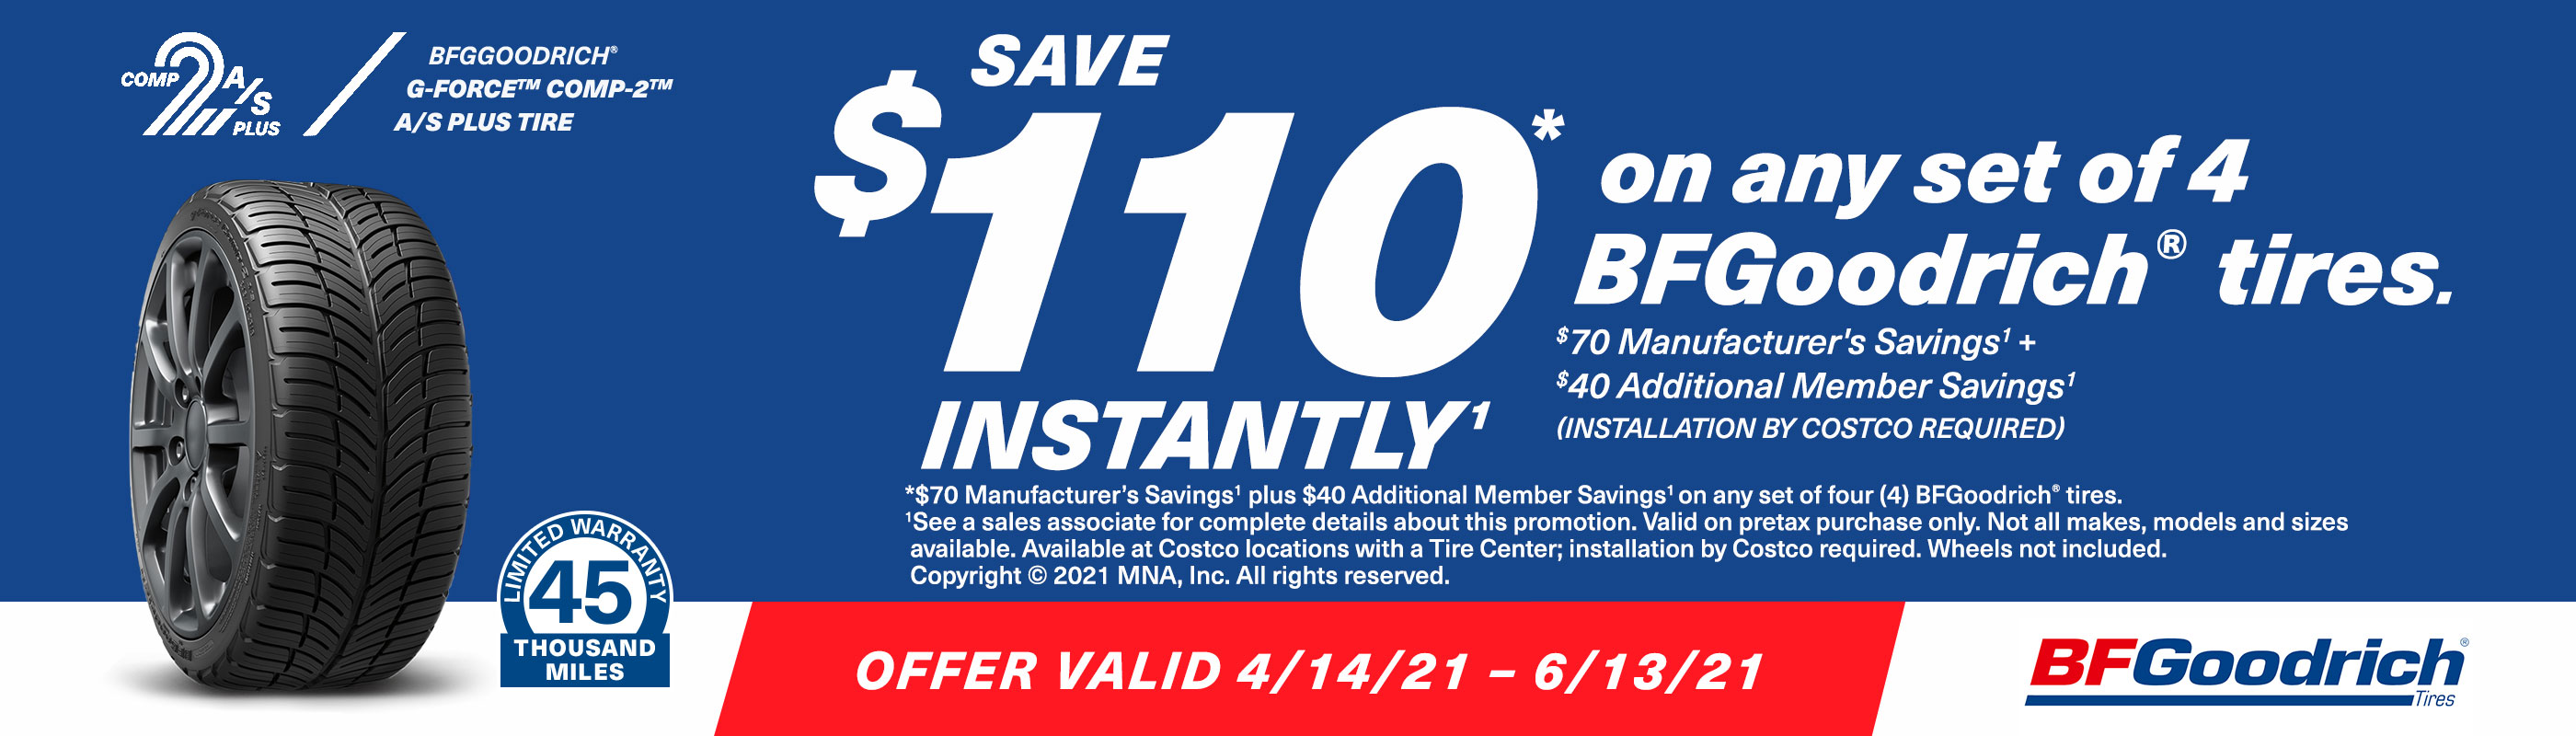 Save $110 Instantly* on any set of four [4] BFGoodrich tires with installation.